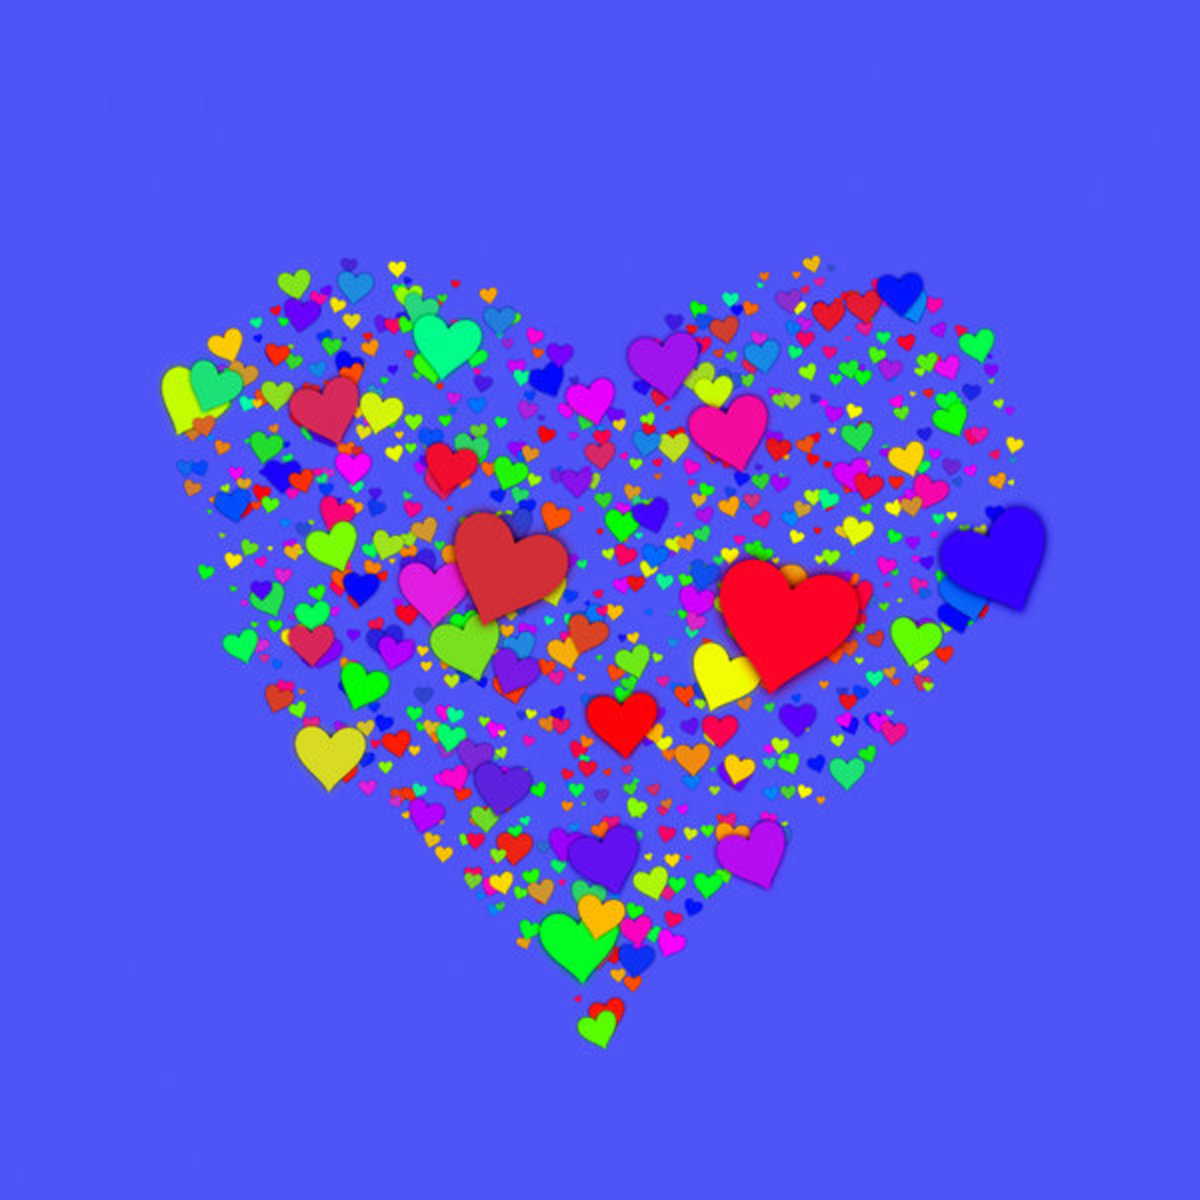 Hearts on Blue Background Picture